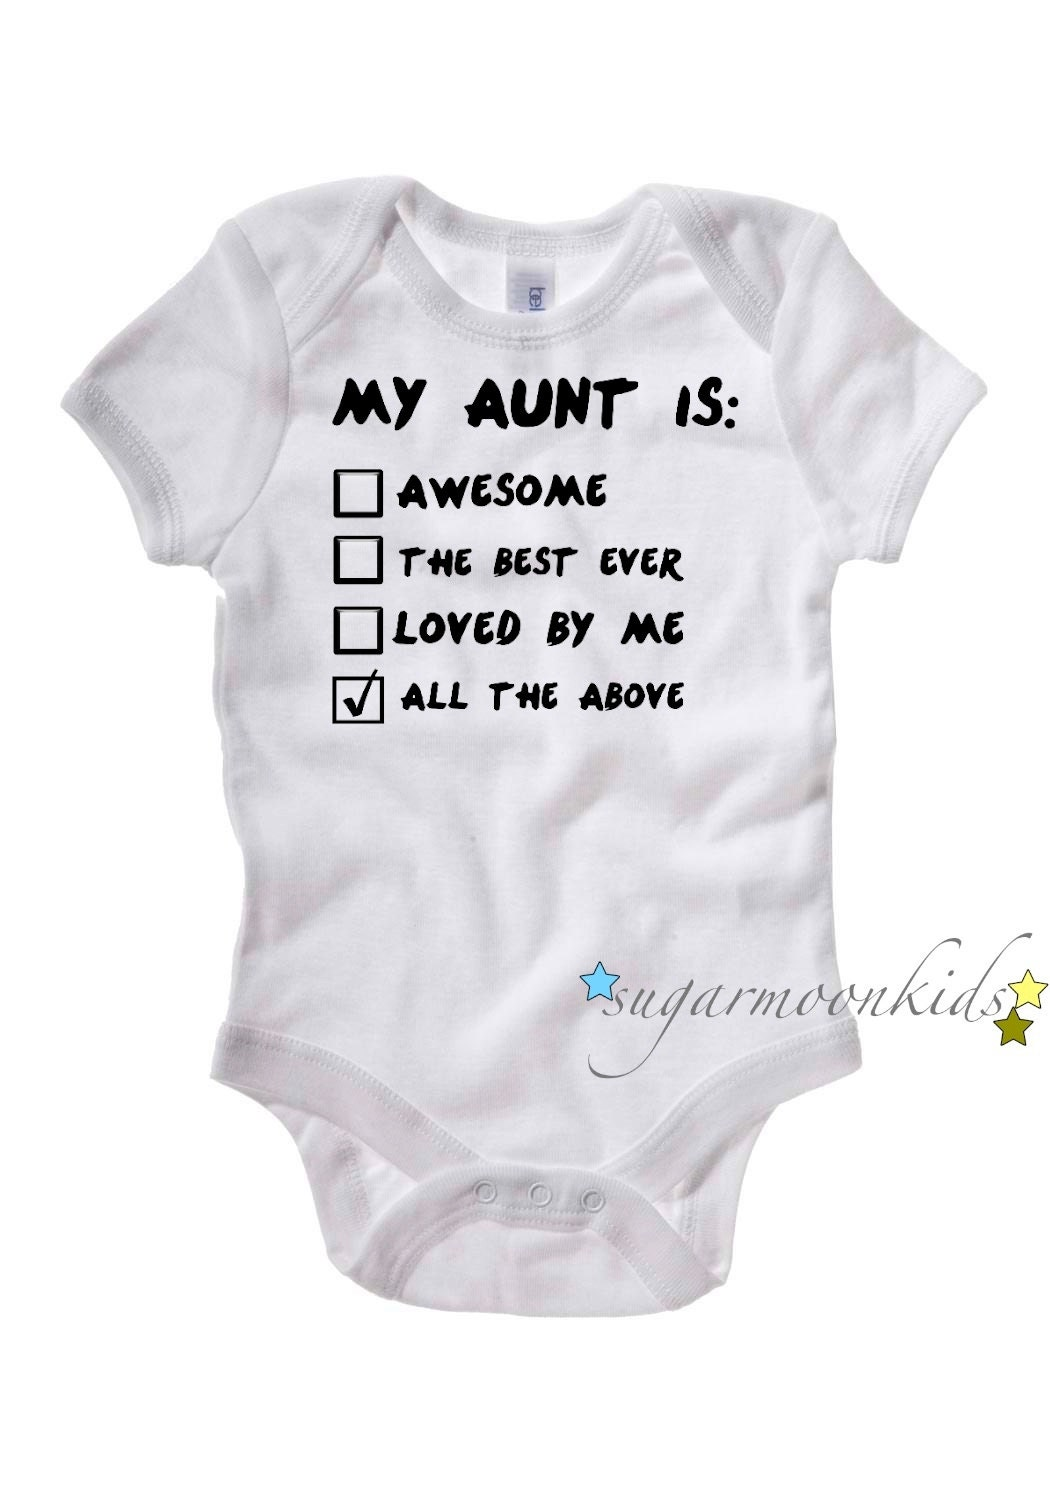 Baby Gifts From Great Aunt : Aunt baby onesie months by sugarmoonkids on etsy